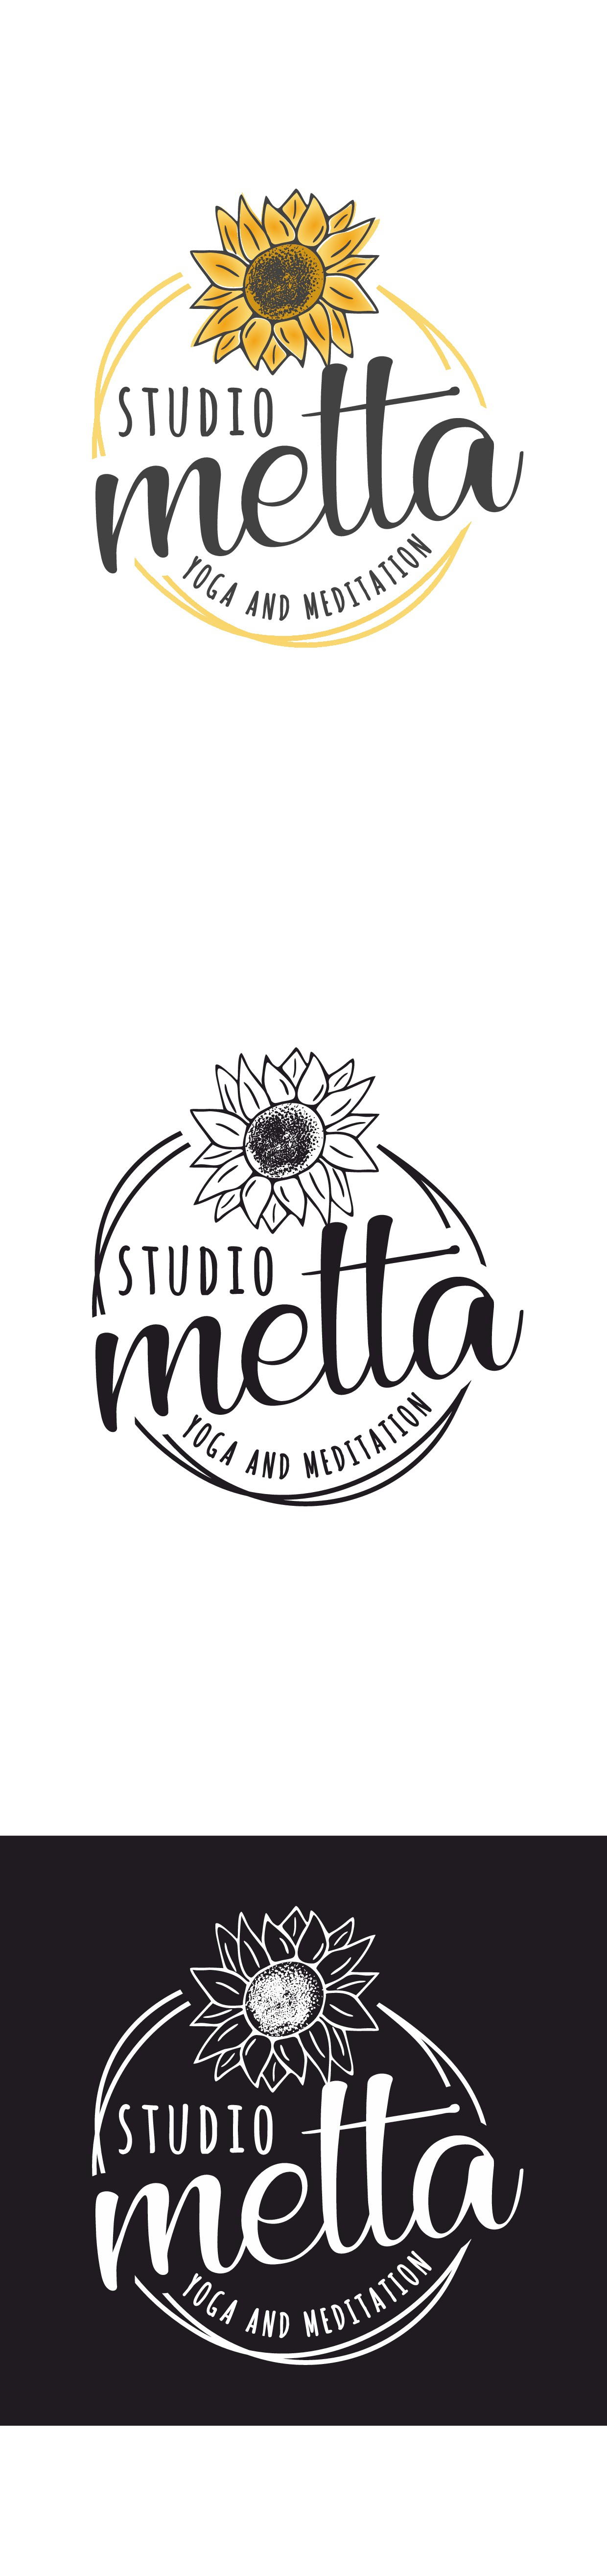 Create a fabulous logo for this wildwoman's brand new yoga studio in rural Vermont!!